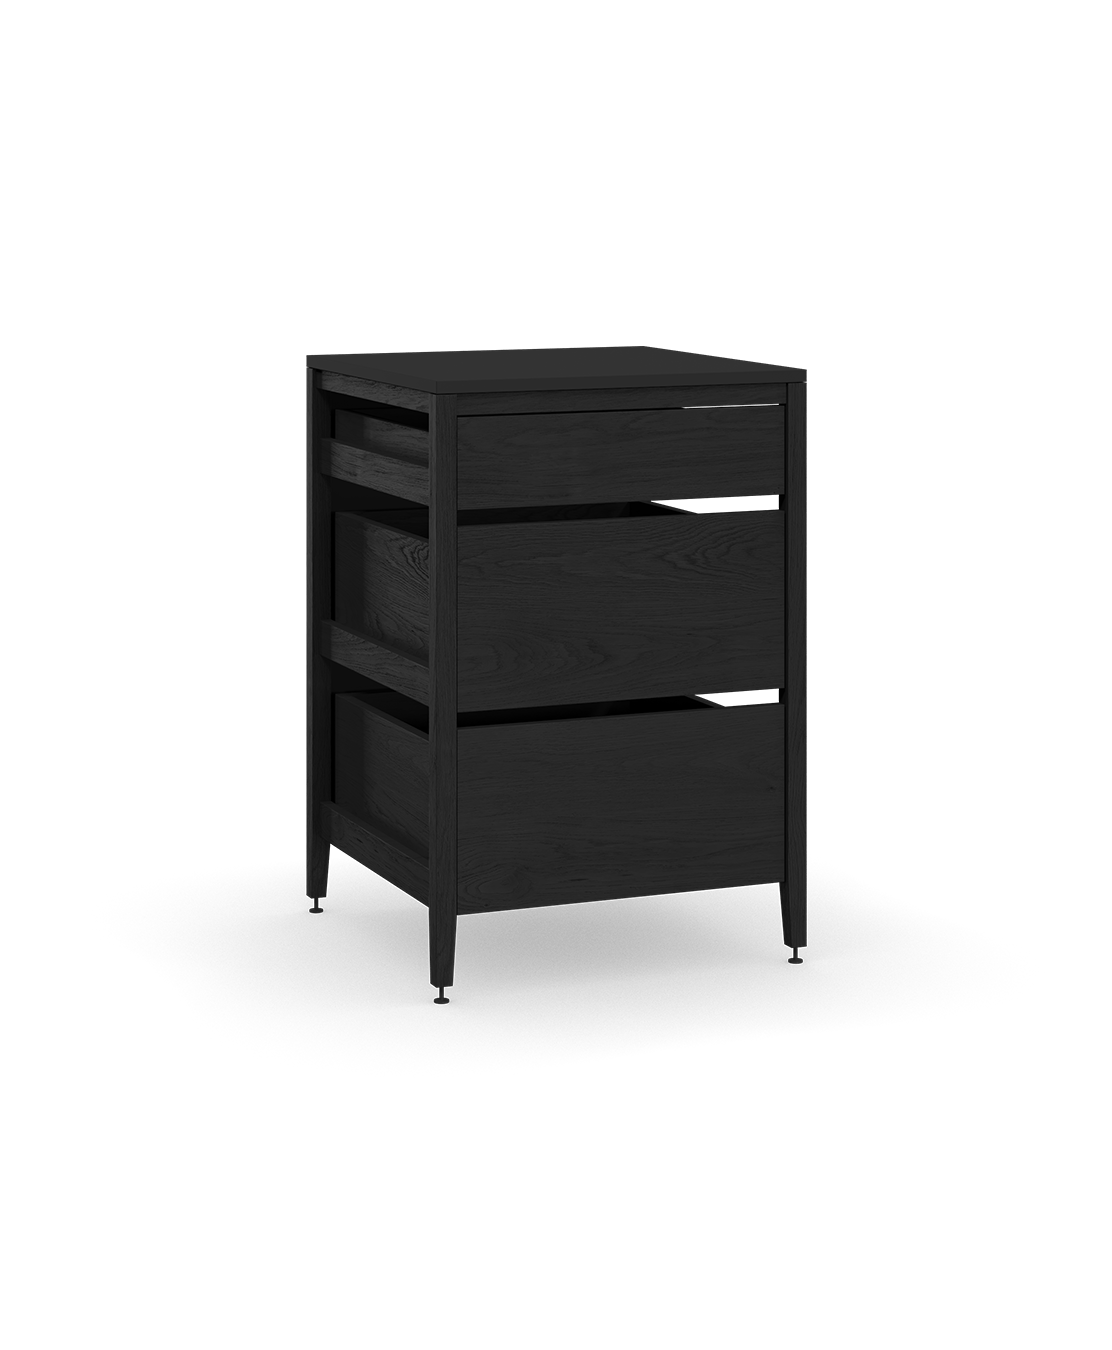 Coquo Radix Midnight Black Stained Oak Solid Wood Modular 3 Drawers Base  Kitchen Cabinet 27 Inch